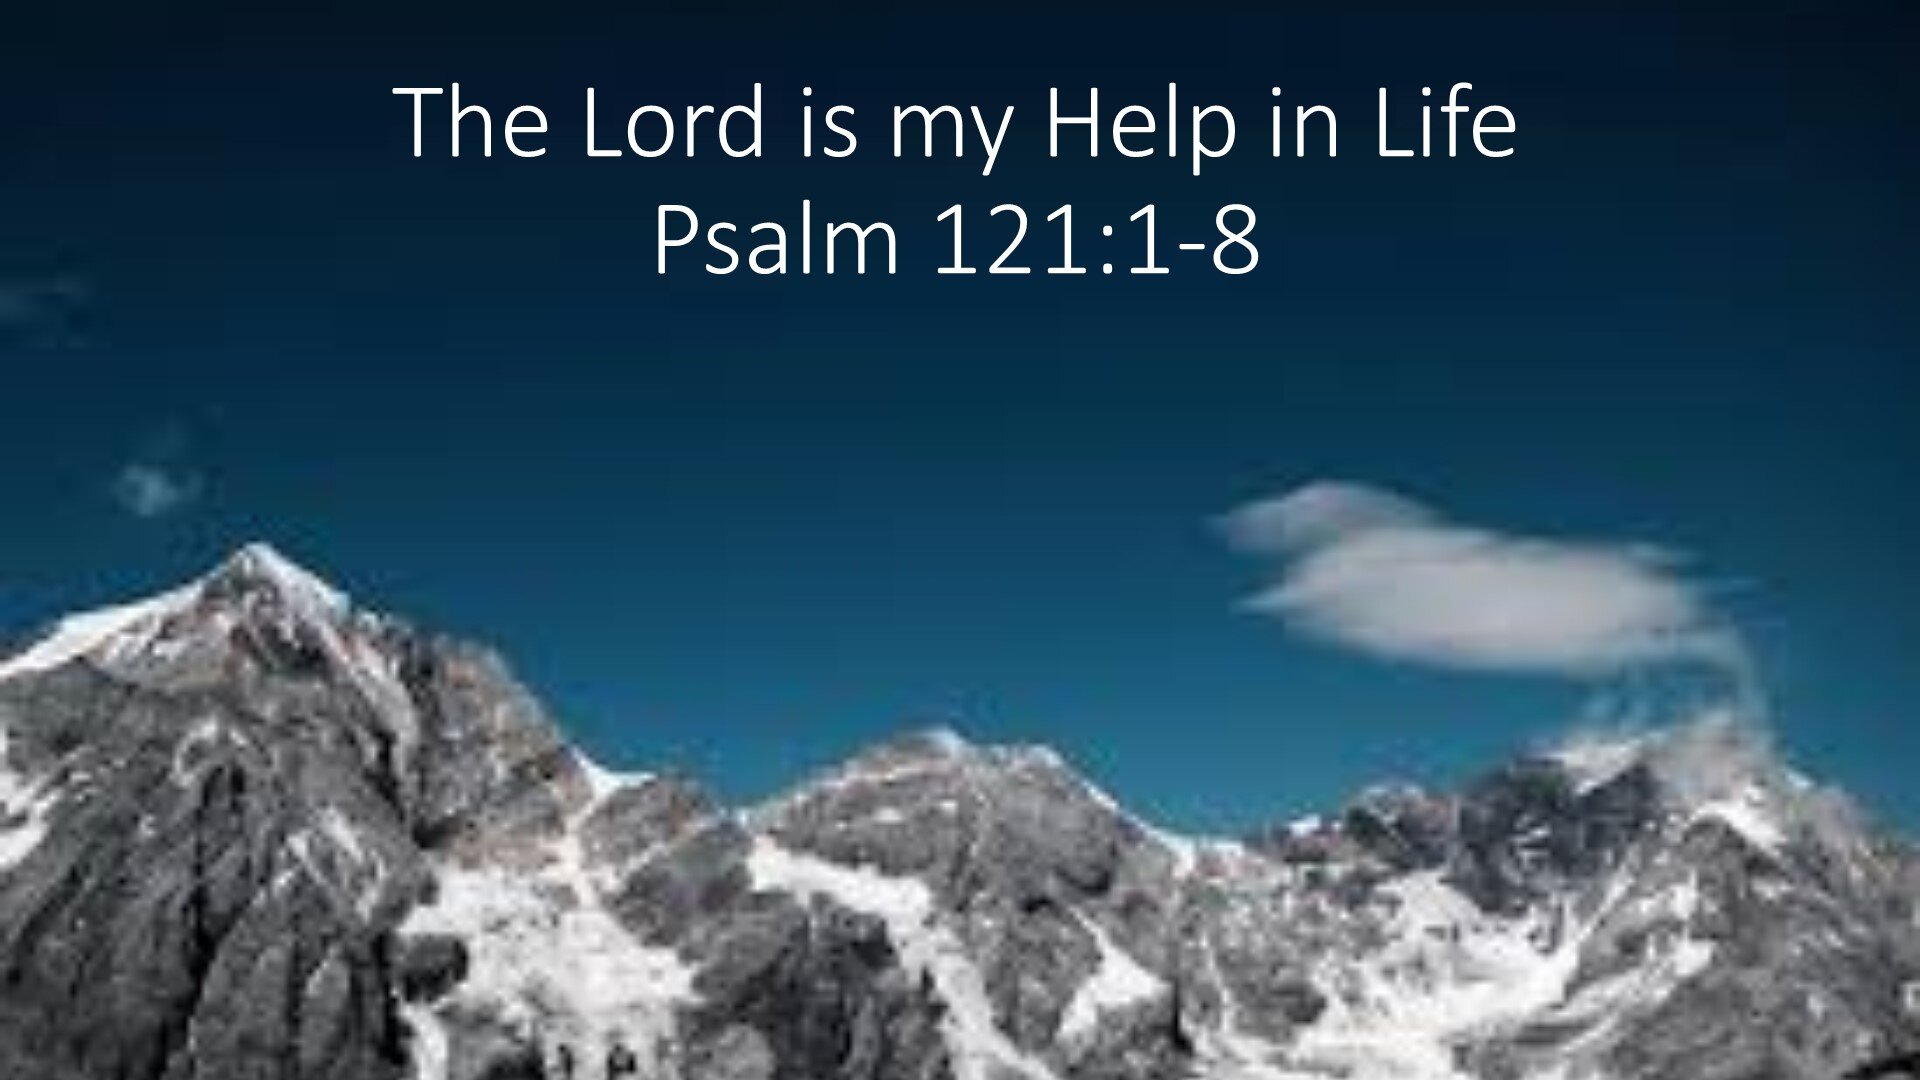 20191103 THE LORD IS MY HELP IN LIFE.jpg